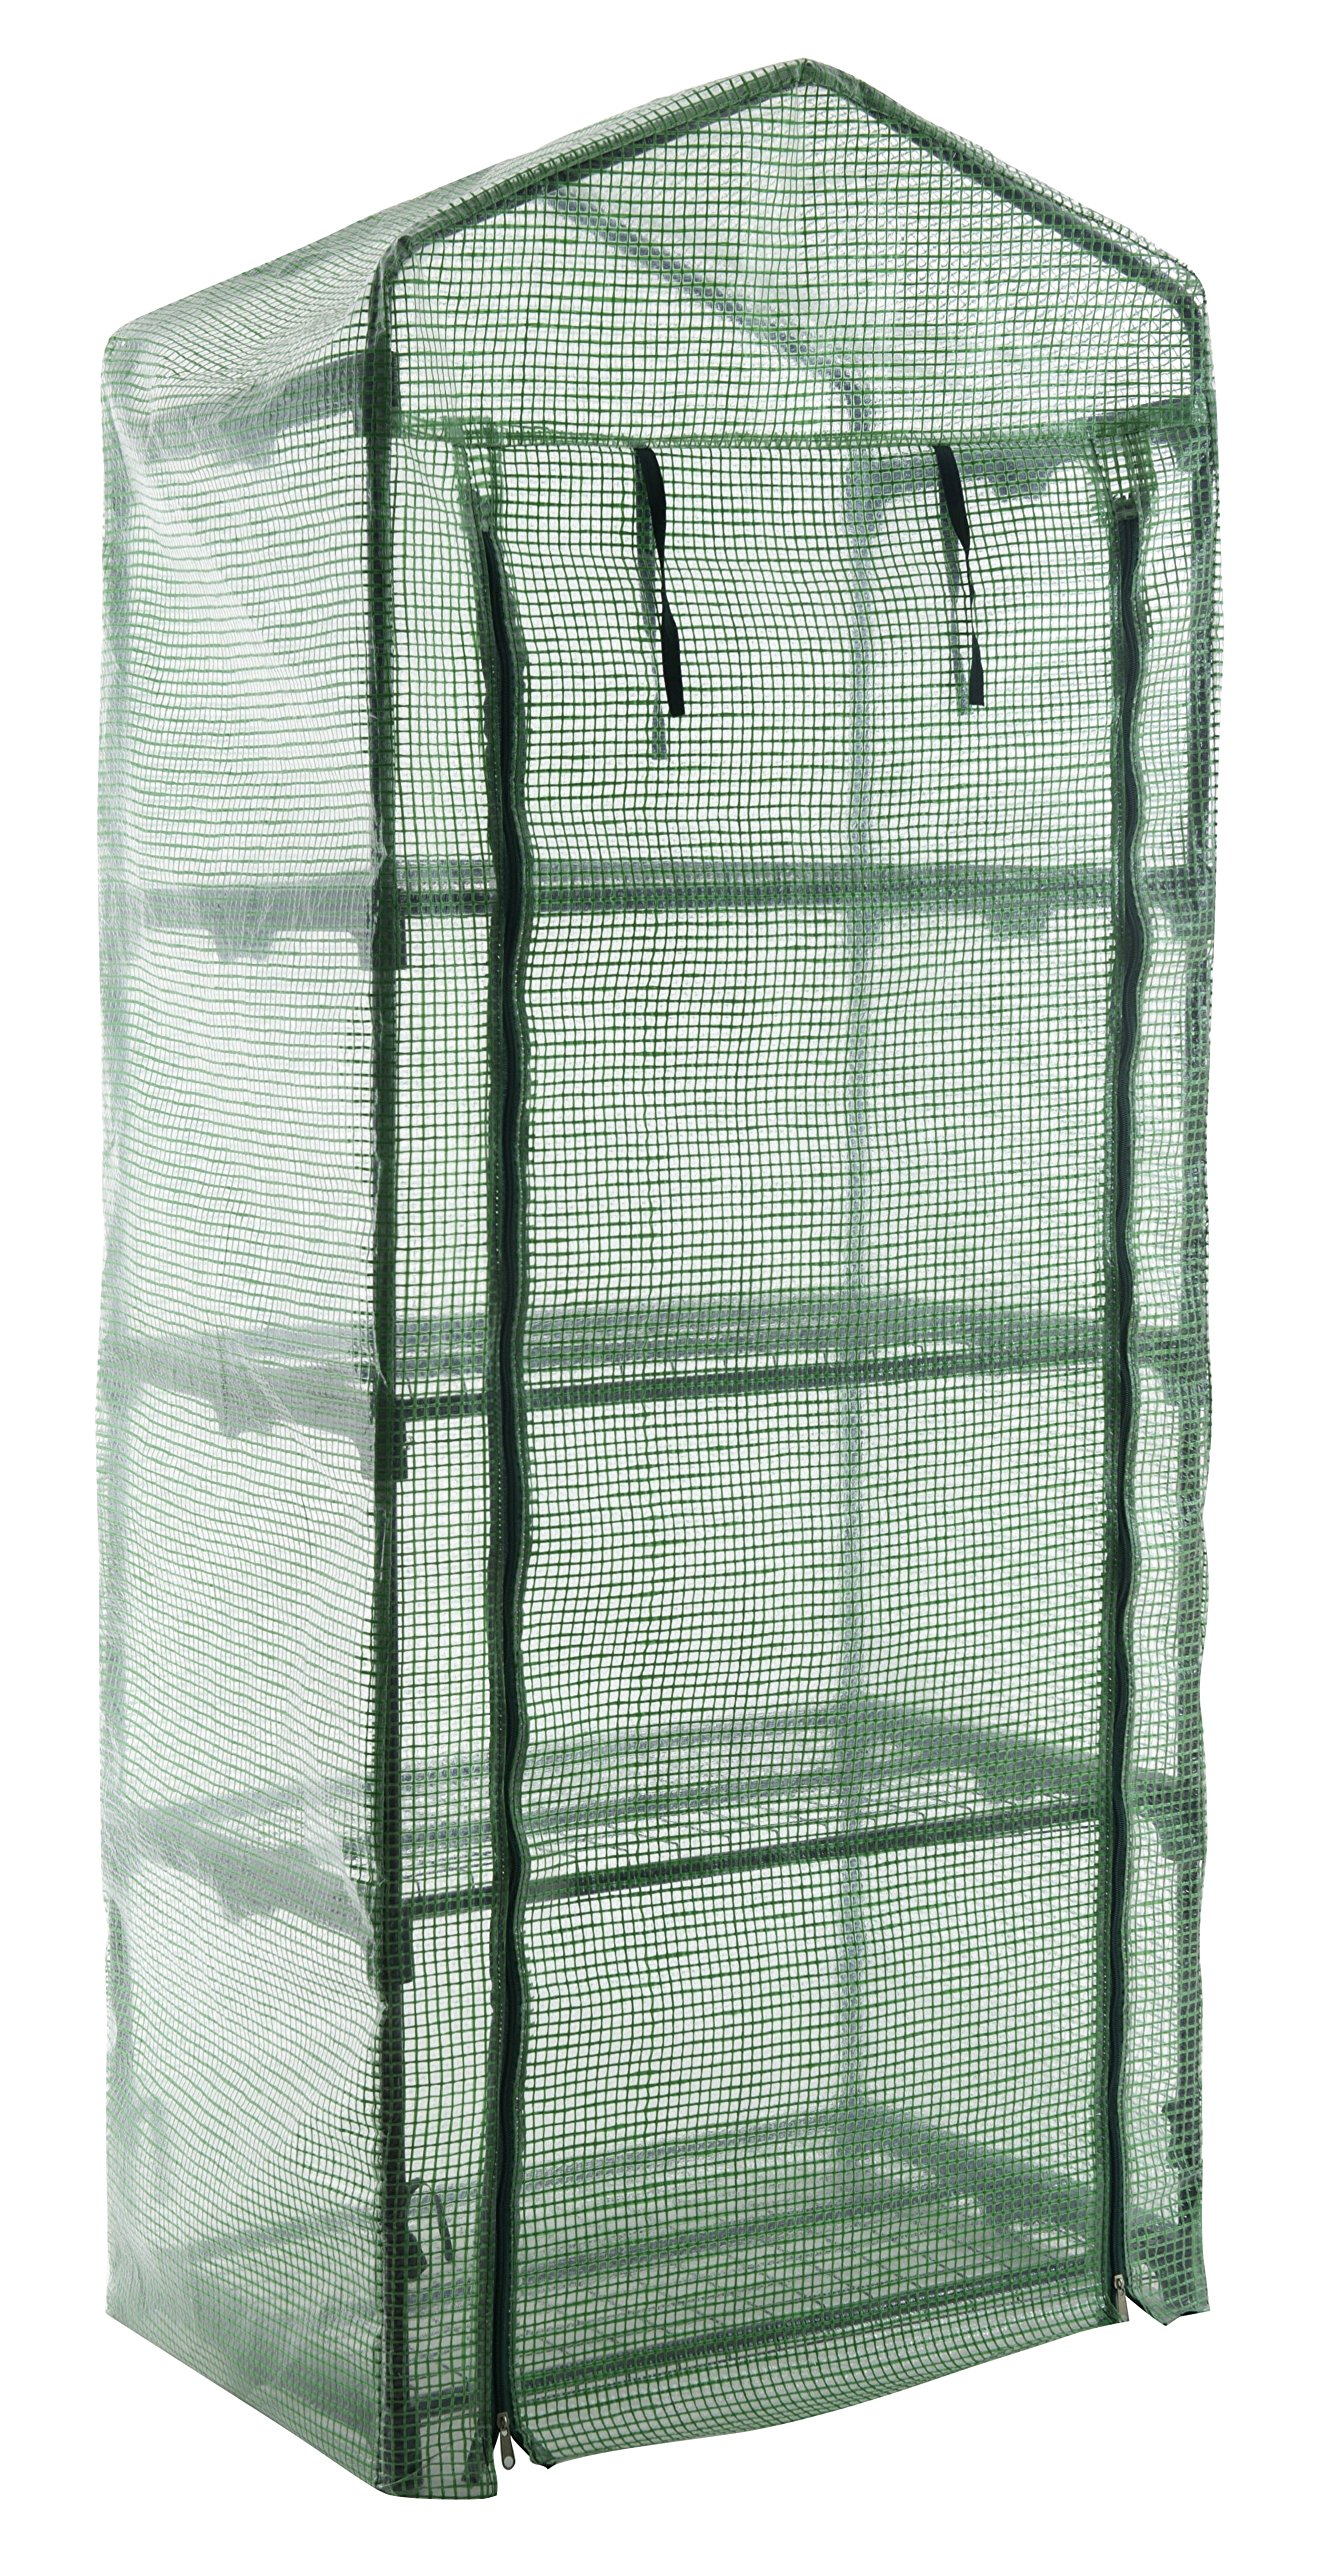 GOJOOASIS 4 Tier Mini Portable Garden Greenhouse Plants Shed Hot House for Indoor and Outdoor by GOJOOASIS